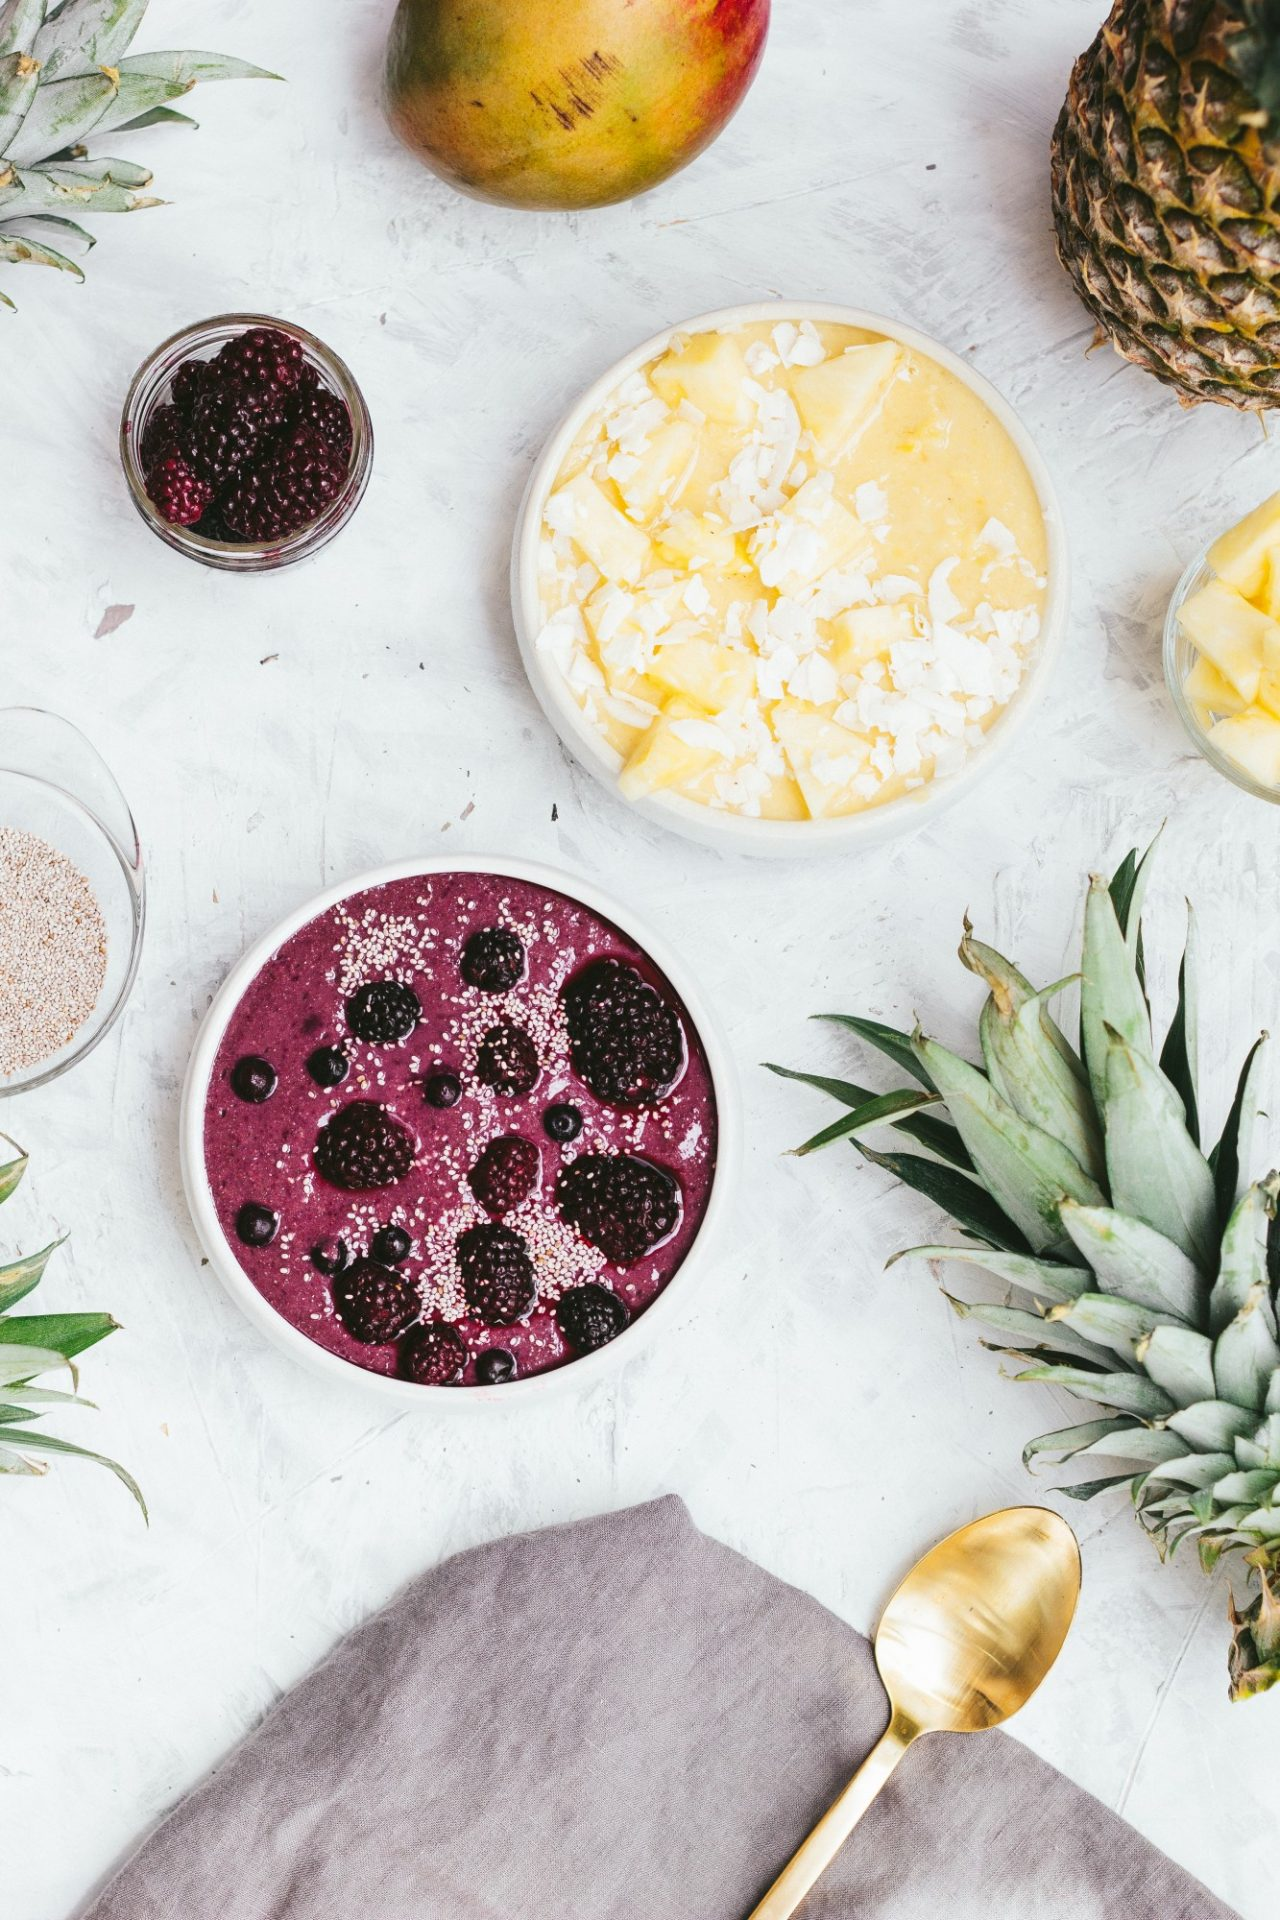 tone it up nutrition plan slimming smoothie recipes healthy beautifying blackberry banana coconut pineapple superfood spirulina